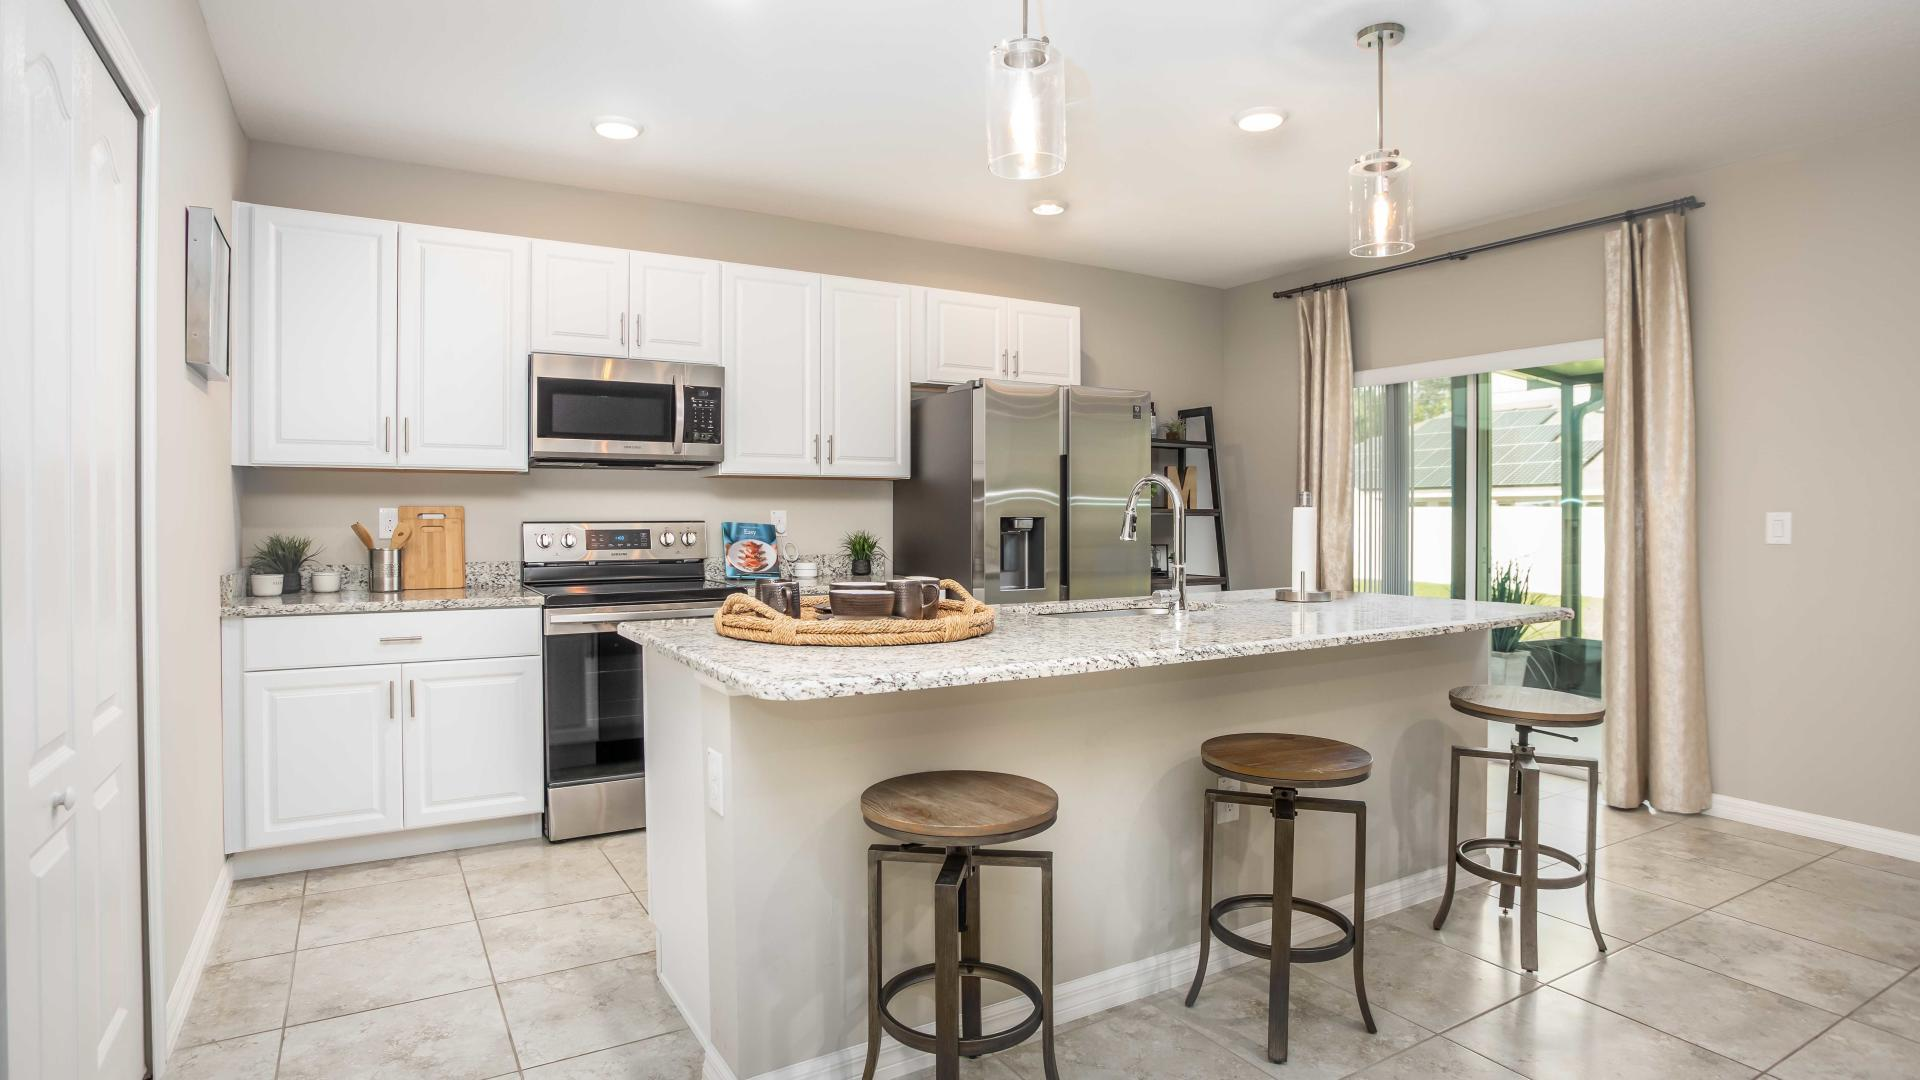 Kitchen featured in the Mesquite By Maronda Homes in Martin-St. Lucie-Okeechobee Counties, FL